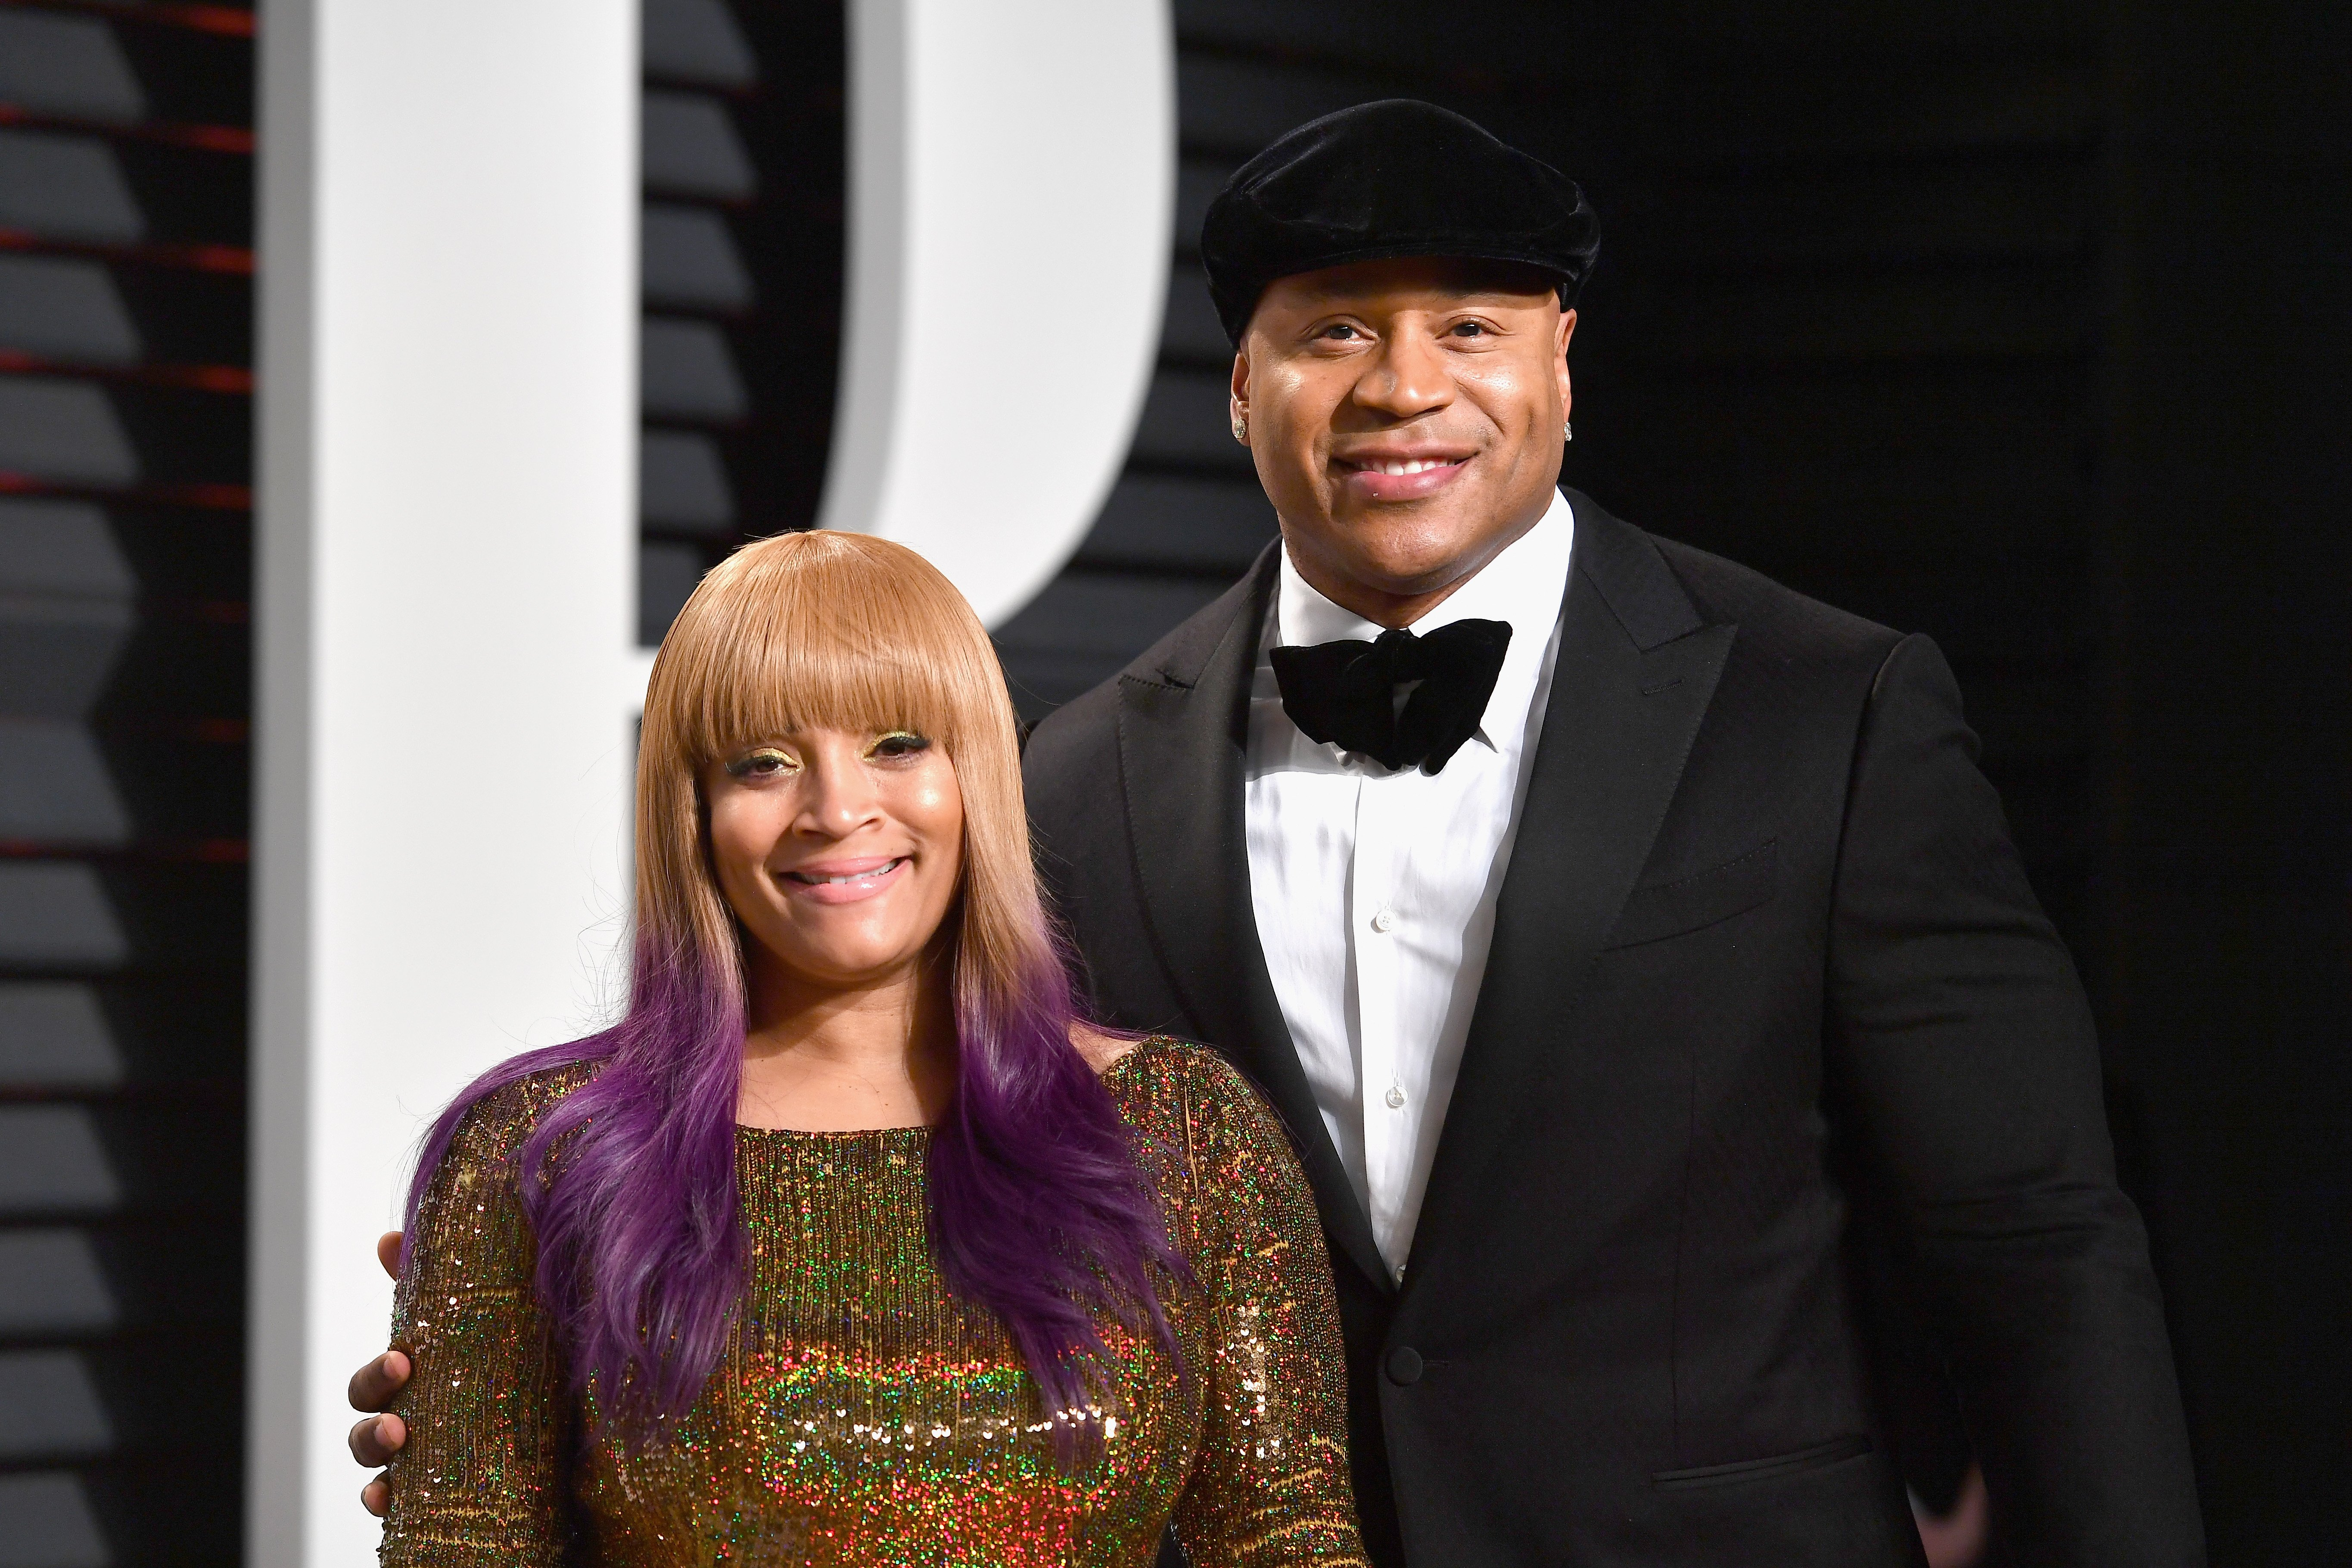 Simone Smith and LL Cool J pose at the 2017 Vanity Fair Oscar Party on February 26, 2017 in Beverly Hills, California. | Source: Getty Images